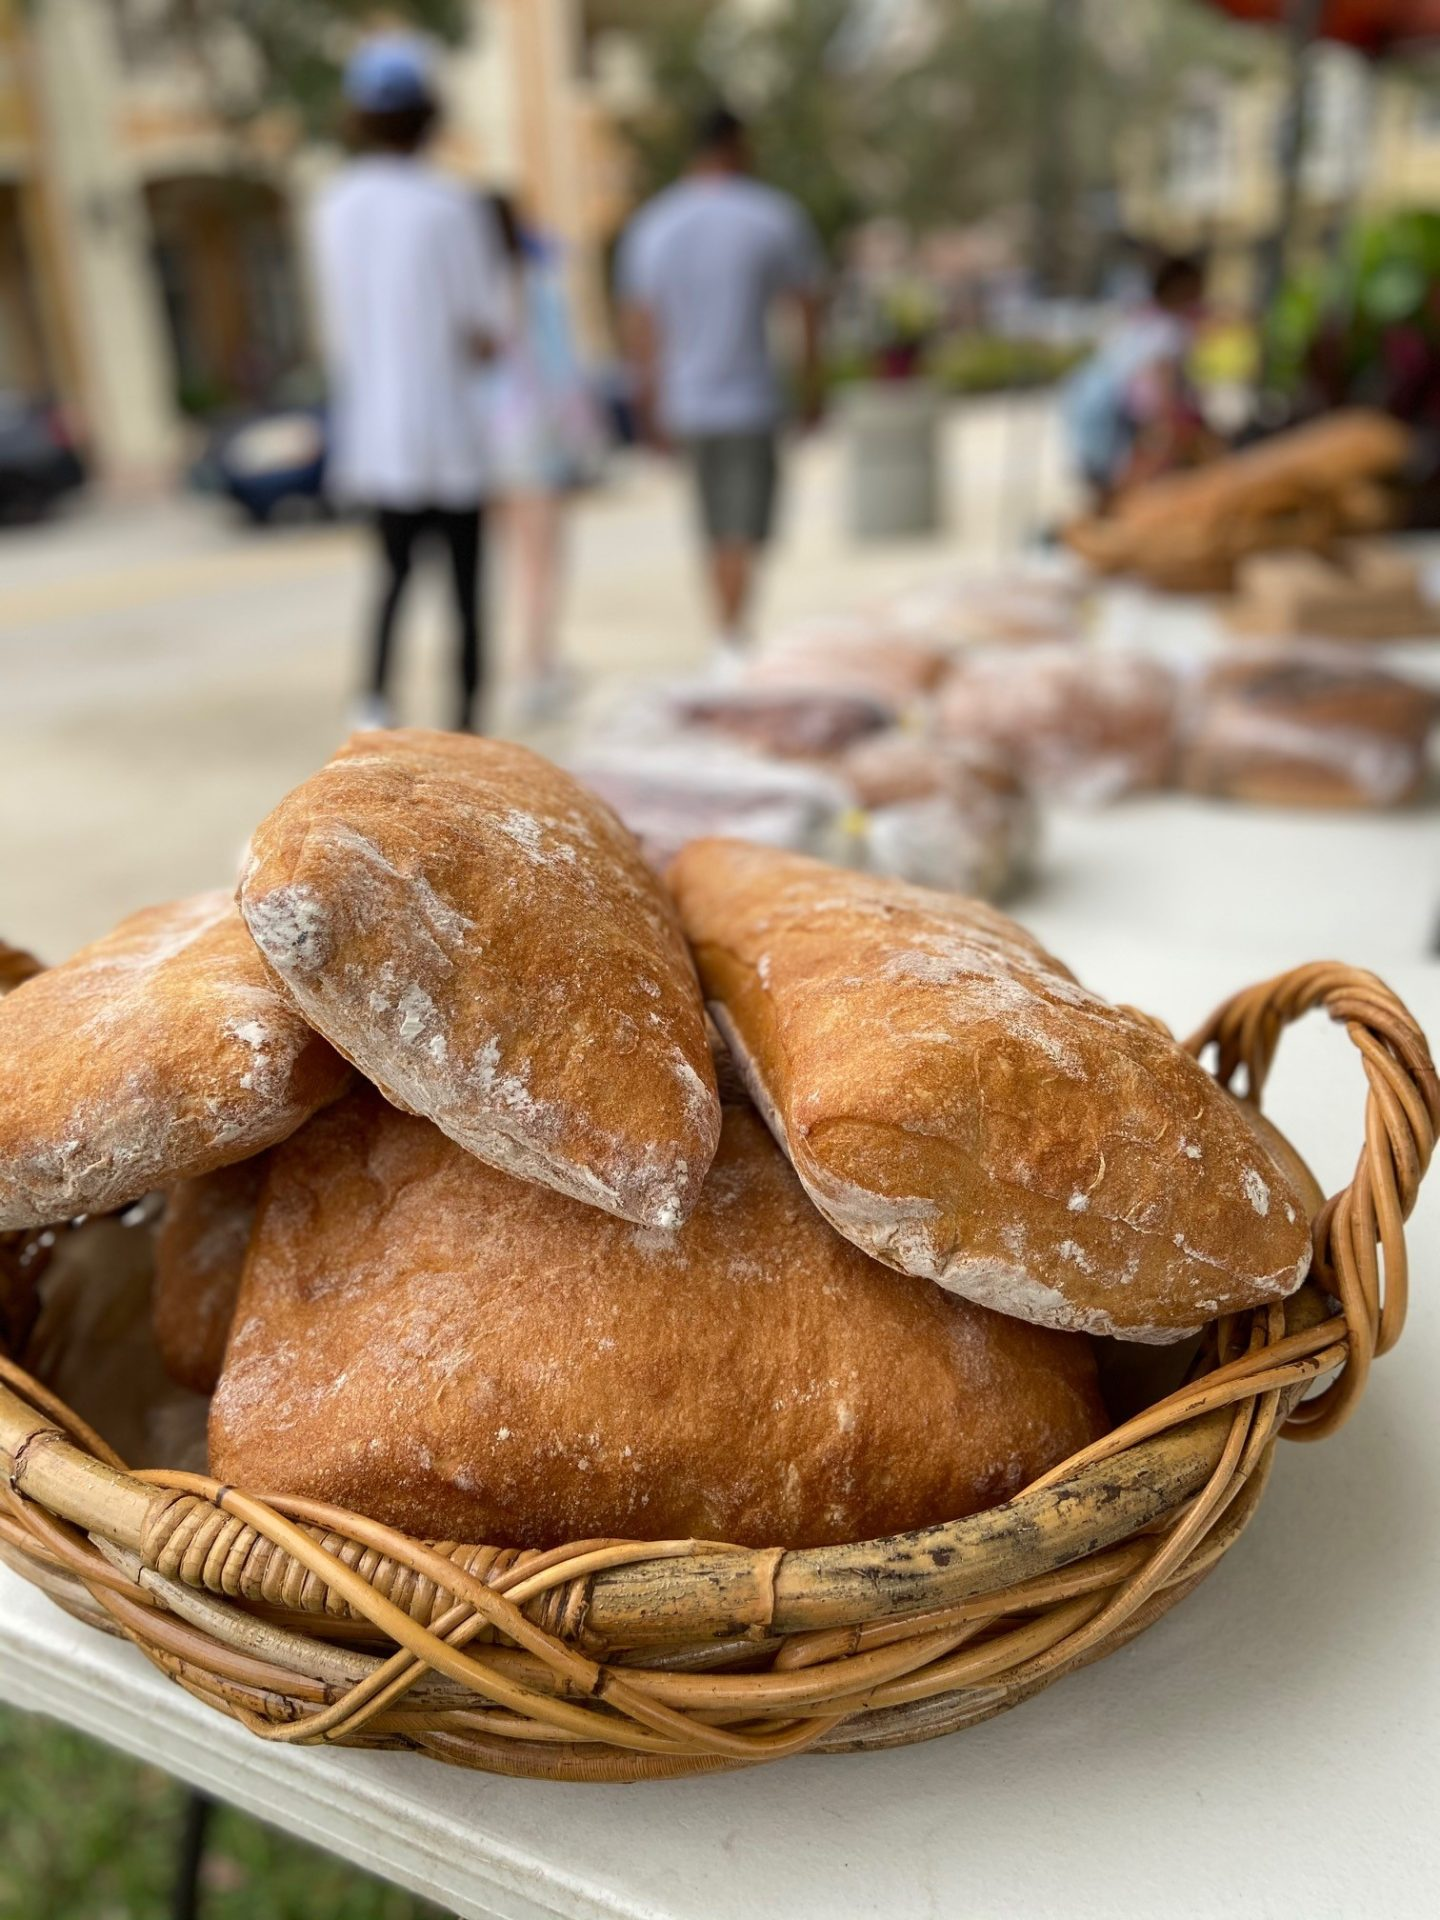 Loaves of bread on display